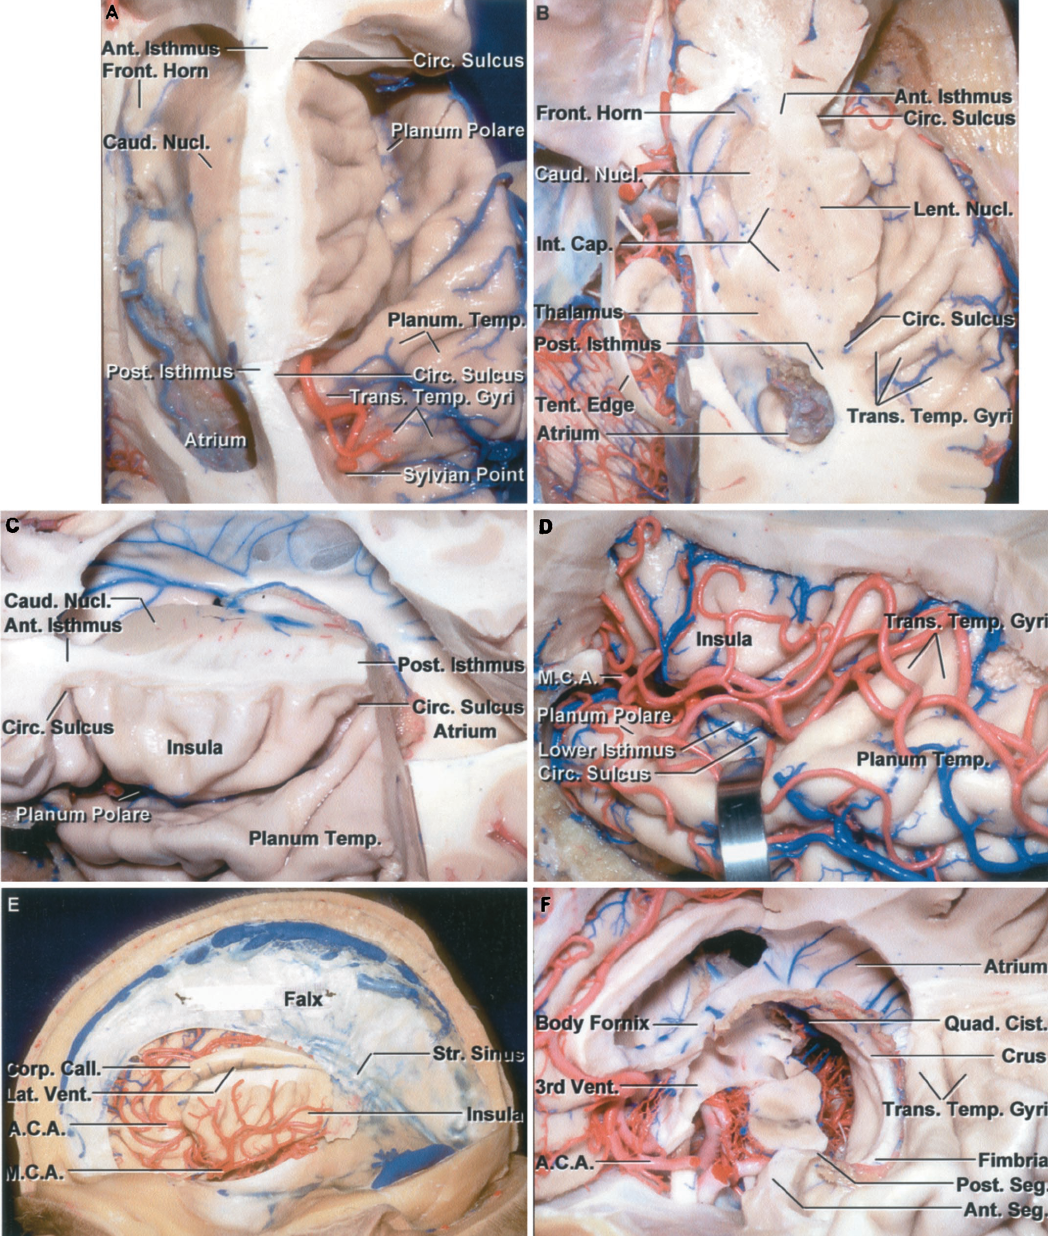 Figure 1.12. Central core of the hemisphere. A, superior view. The central core is the portion located between the insular surface laterally and the lateral and third ventricles medially. We refer to the narrow strip of white matter deep to the circular sulcus and connecting the central core to the remaining hemisphere as the cerebral isthmus. The isthmus, at the margin of the core, conveys all the fibers related to all of the motor and sensory pathways, including those that form the internal capsule and optic radiations. The anterior margin of the circular sulcus is separated from the frontal horn by the relatively thin anterior part of the isthmus, and the posterior margin of the circular sulcus is separated from the atrium by the narrow posterior part of the isthmus. The upper margin of the isthmus separating the upper margin of the circular sulcus and the lateral ventricle is somewhat thicker than the anterior or posterior margin of the isthmus. The transverse temporal gyri, the most anterior of which is Heschl's gyrus, are located lateral to the posterior margin of the insula on the planum temporale. An area without gyri anterior to the planum temporale on the anterior part of the upper surface of the temporal lobe, called the planum polare, faces the anterior part of the lateral surface of the insula. The transverse temporal gyri radiate forward and laterally from the posterior isthmus located lateral to the atrium. The sylvian point, the site at which the last insular branch of the middle cerebral artery turns laterally from the insula, is located lateral to the posterior isthmus and the posterior part of the circular sulcus. B, superior view of the central core and the anterior and posterior parts of the cerebral isthmus. The transverse temporal gyri seem to radiate laterally and forward from an apex situated lateral to the atrium, the posterior part of the circular sulcus, and the posterior isthmus. The section extends through the anterior and posterior limb and genu of the internal capsule, thalamus, and lentiform and caudate nuclei. The thalamus is located directly above the midbrain in the center of the tentorial incisura. C, superolateral view of the insula, circular sulcus, and the anterior and posterior isthmi. The circular sulcus extends completely around the margin of the insula and is located superficial to the white matter forming the cerebral isthmus. The isthmus is the thinnest area between the insular and ventricular surfaces. D, the upper surface of the left temporal lobe has been retracted to expose the lower part of the circular sulcus and isthmus located deep to the circular sulcus. An incision extending through the thin isthmus at the lower margin of the circular sulcus will expose the temporal horn, but will also cut across the optic and auditory radiations and the sublenticular part of the internal capsule, unless only a short segment of the anterior part of the lower isthmus is opened. E, lateral view of the central core. The cerebral hemisphere has been removed by dividing the isthmus, located deep to the circular sulcus and extending around the margin of the insula. The corpus callosum and fibers crossing the midline were also divided. Middle cerebral branches course along the insular surface. The lower margin of the circular sulcus is located deep to the superior temporal sulcus. F, all of the central core has been removed. It includes the caudate and lentiform nuclei, thalamus, and some of the corona radiata and internal capsule. The medial part of the core has been separated from the ventricular surface by opening the choroidal fissure, the natural cleft and cleavage plane between the thalamus and fornix. The body, crus, and fimbria of the fornix form the outer border of the choroidal fissure. The transverse temporal gyri, forming the planum temporale, radiate forward from the posterior edge of the circular sulcus located lateral to the atrium. The quadrigeminal cistern is located medial to the crus of the fornix. A.C.A., anterior cerebral artery; Ant., anterior; Call., callosum; Cap., capsule; Caud., caudate; Circ., circular; Cist., cistern; Corp., corpus; Front., frontal; Int., internal; Lat., lateral; Lent., lentiform; M.C.A., medial cerebral artery; Nucl., nucleus; Post., posterior; Quad., quadrigeminal; Seg., segment; Str., straight; Temp., temporal, temporale; Tent., tentorial; Trans., transverse; Vent., ventricle.